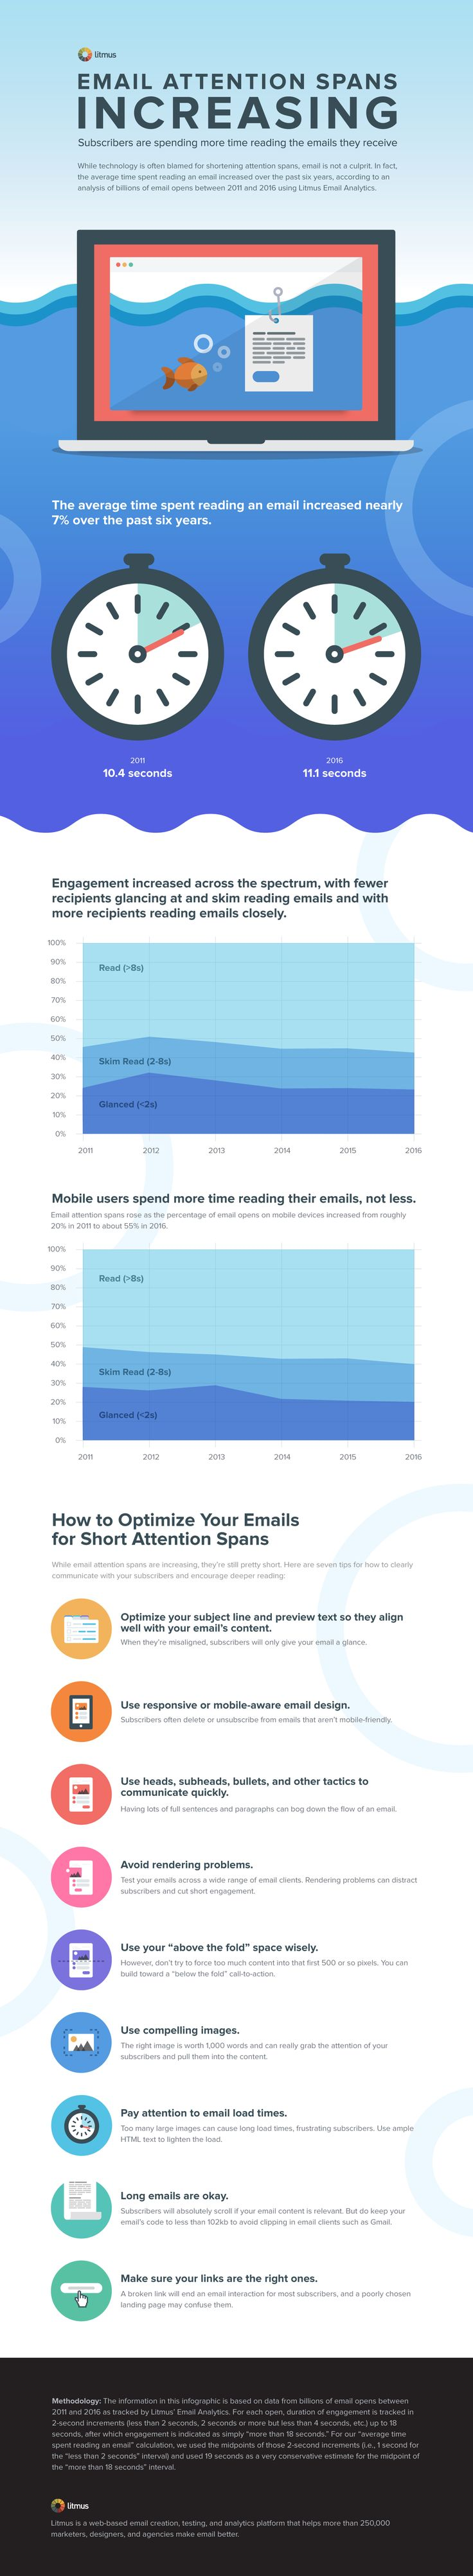 How to Cure a Short Attention Span With Email - #infographic